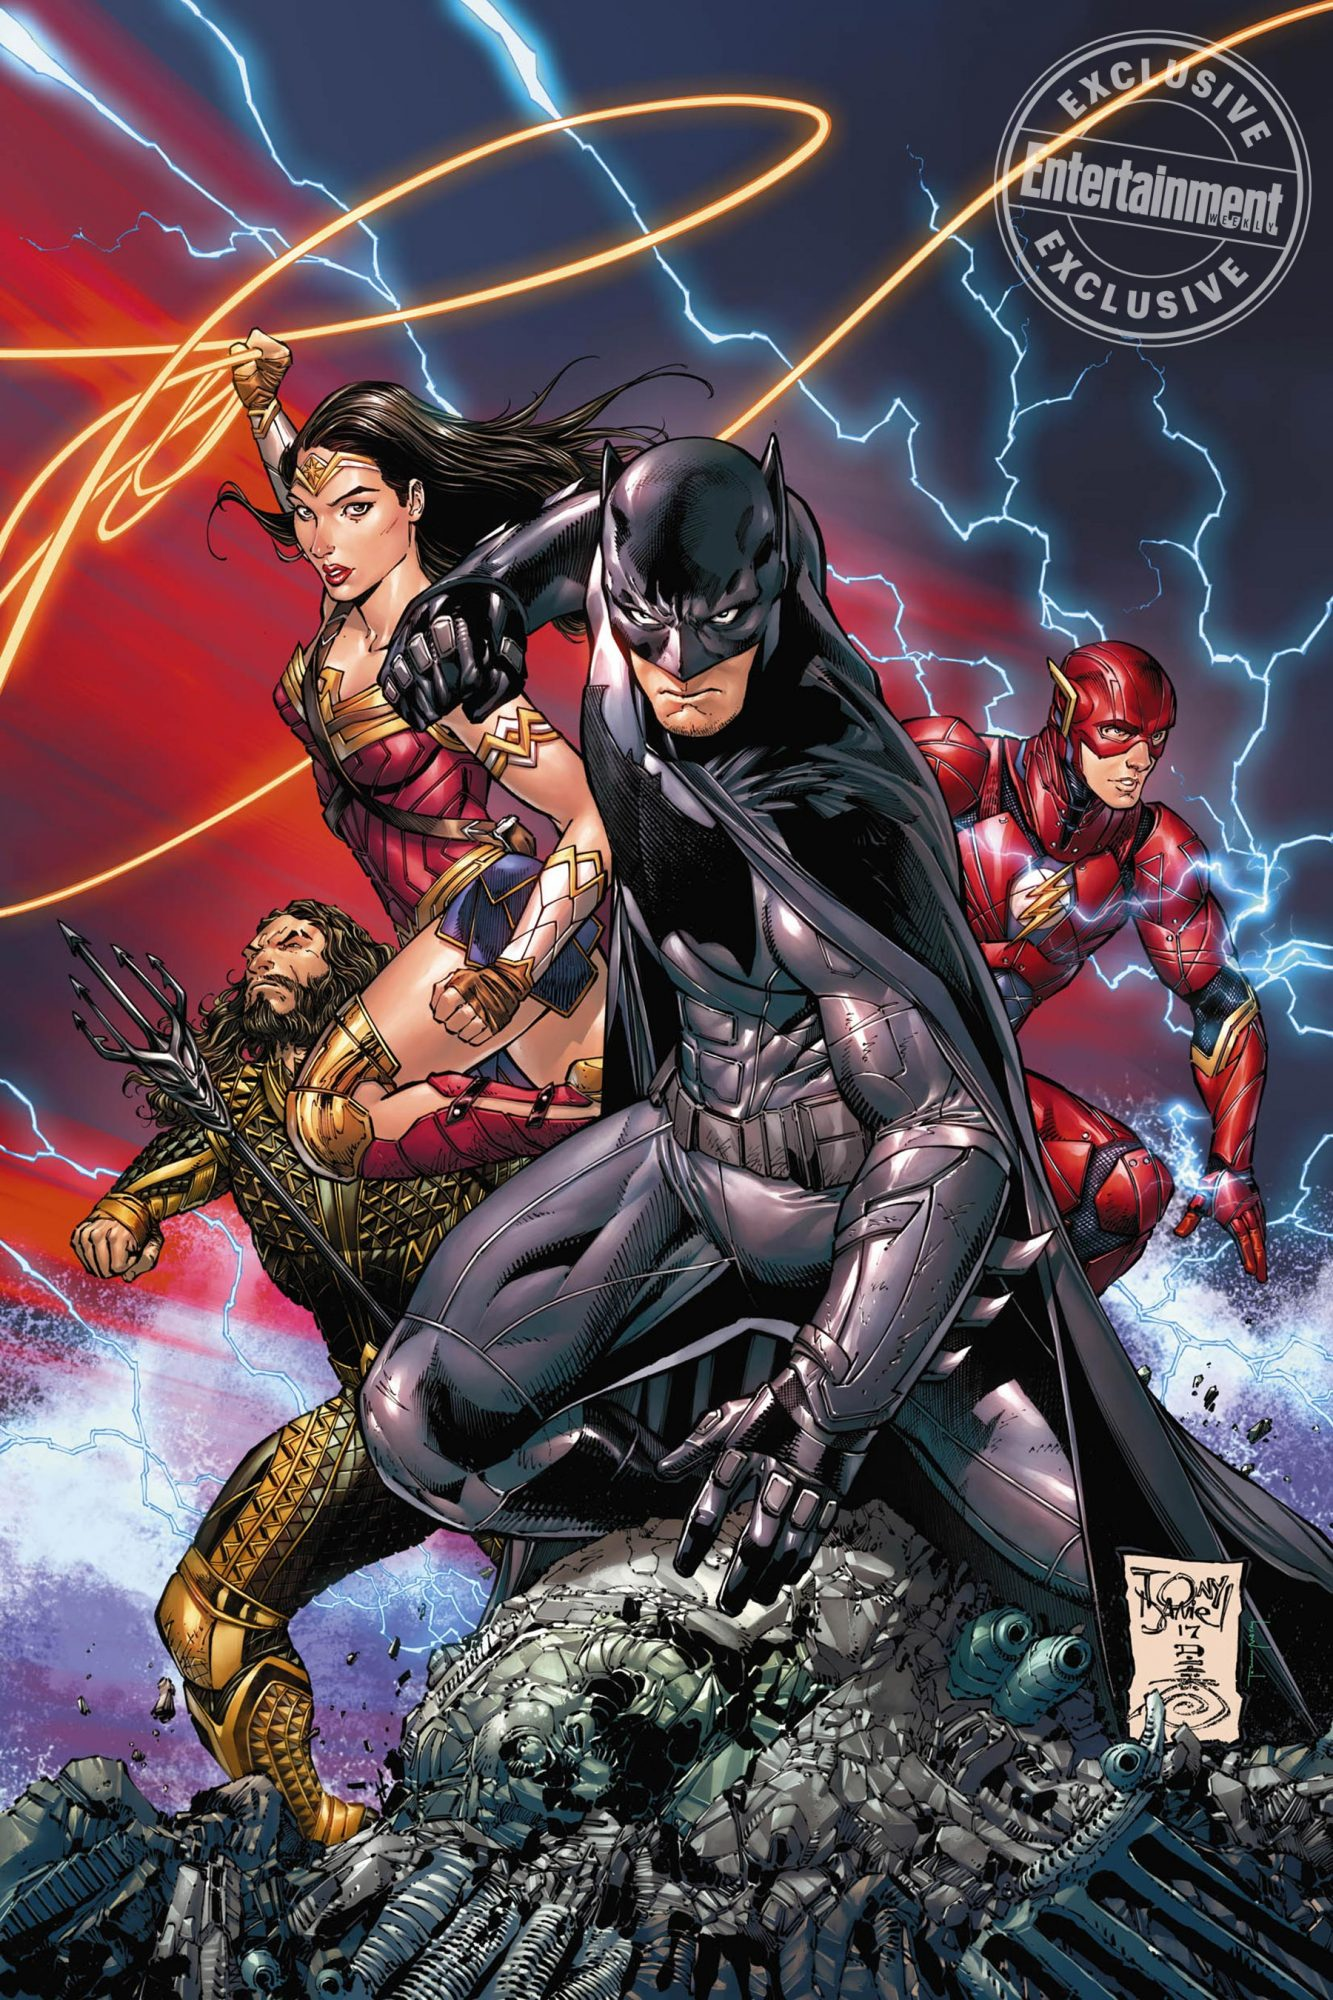 Batman#34 Justice League takes over DC comics CR: DC Comics